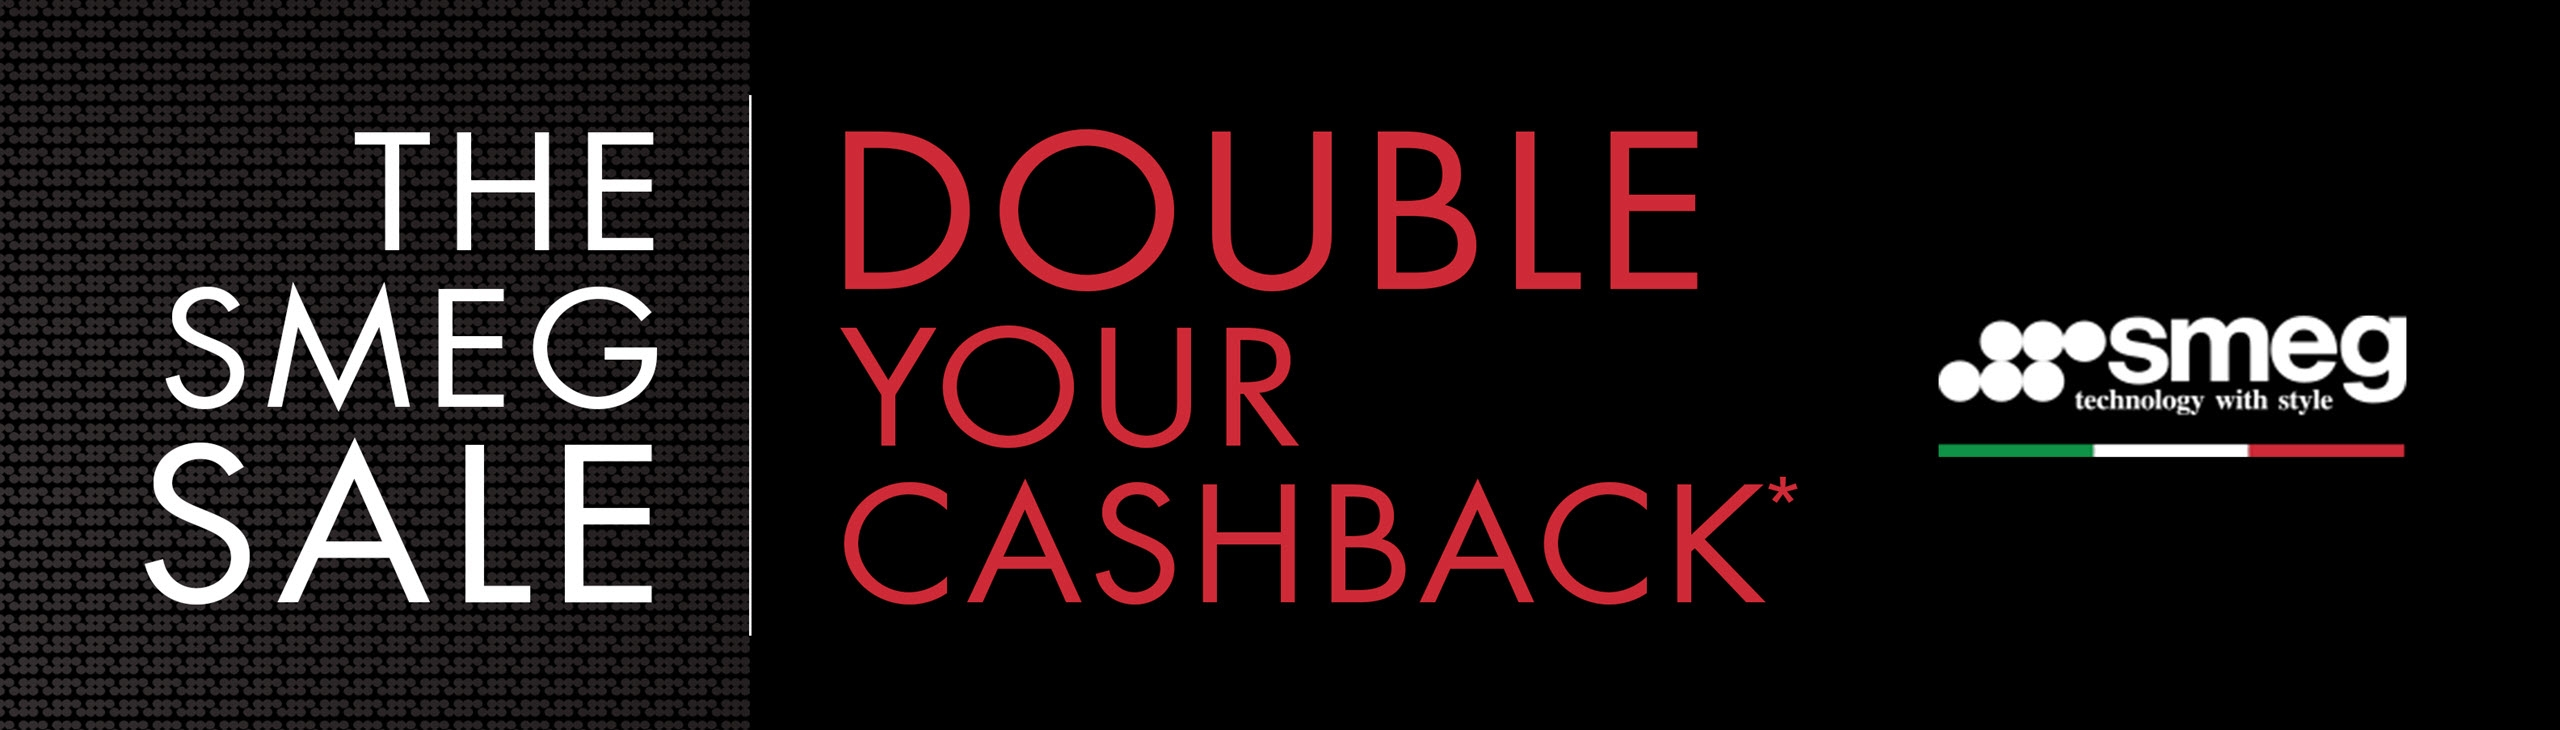 Smeg Double Your Cashback on Classic and Victoria